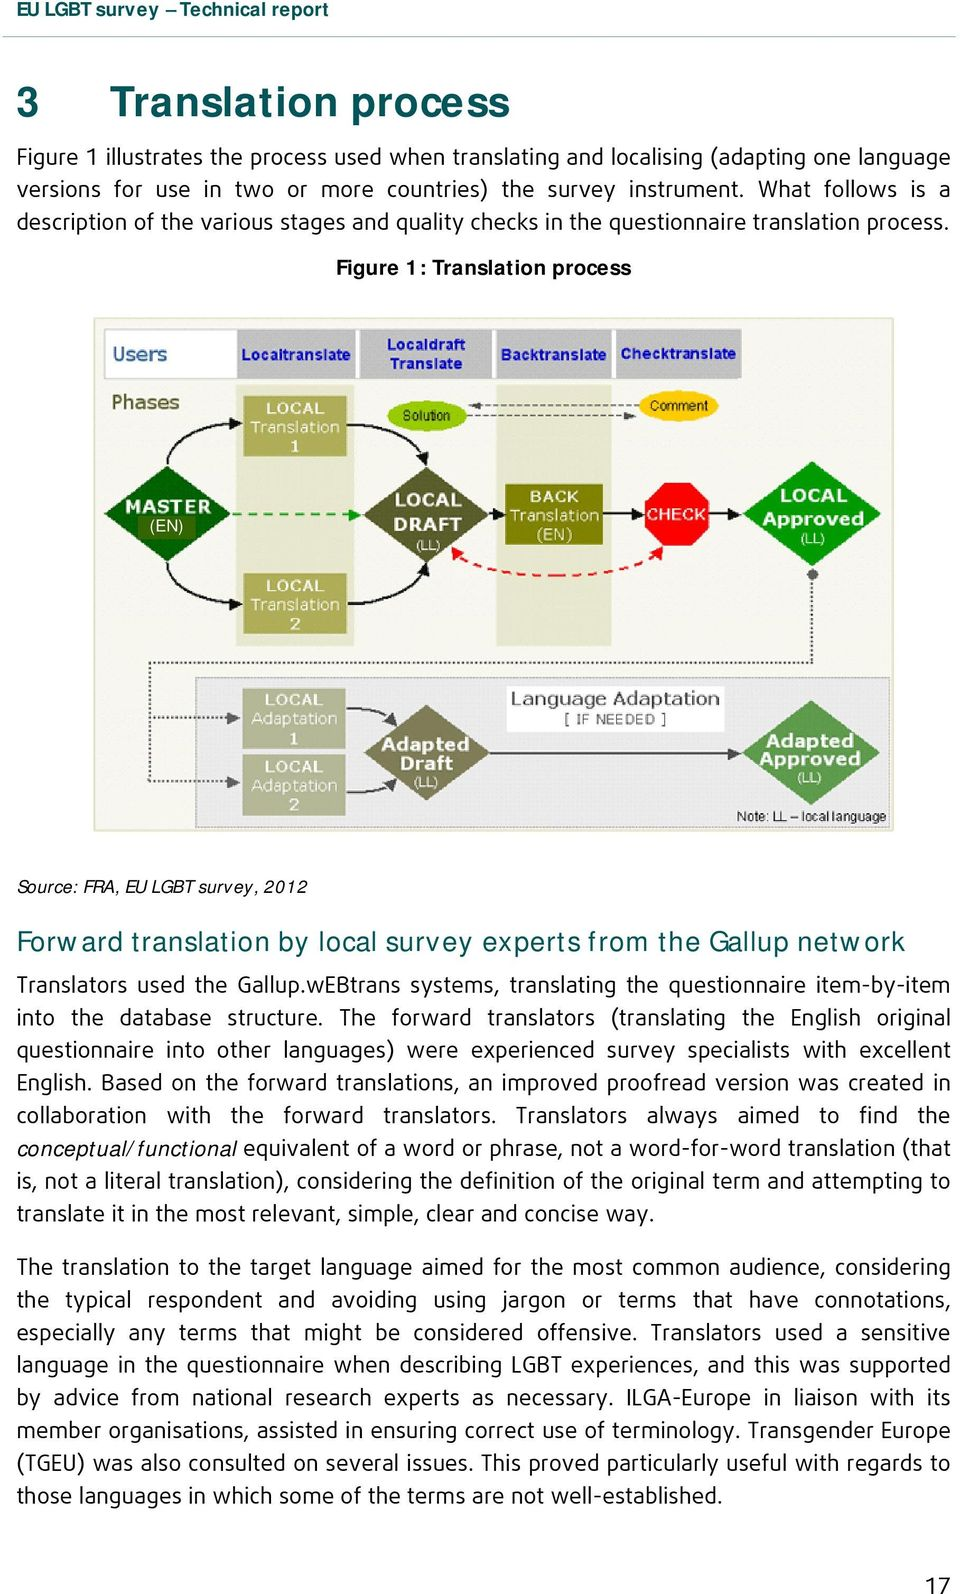 Figure 1: Translation process (EN) Source: FRA, EU LGBT survey, 2012 Forward translation by local survey experts from the Gallup network Translators used the Gallup.